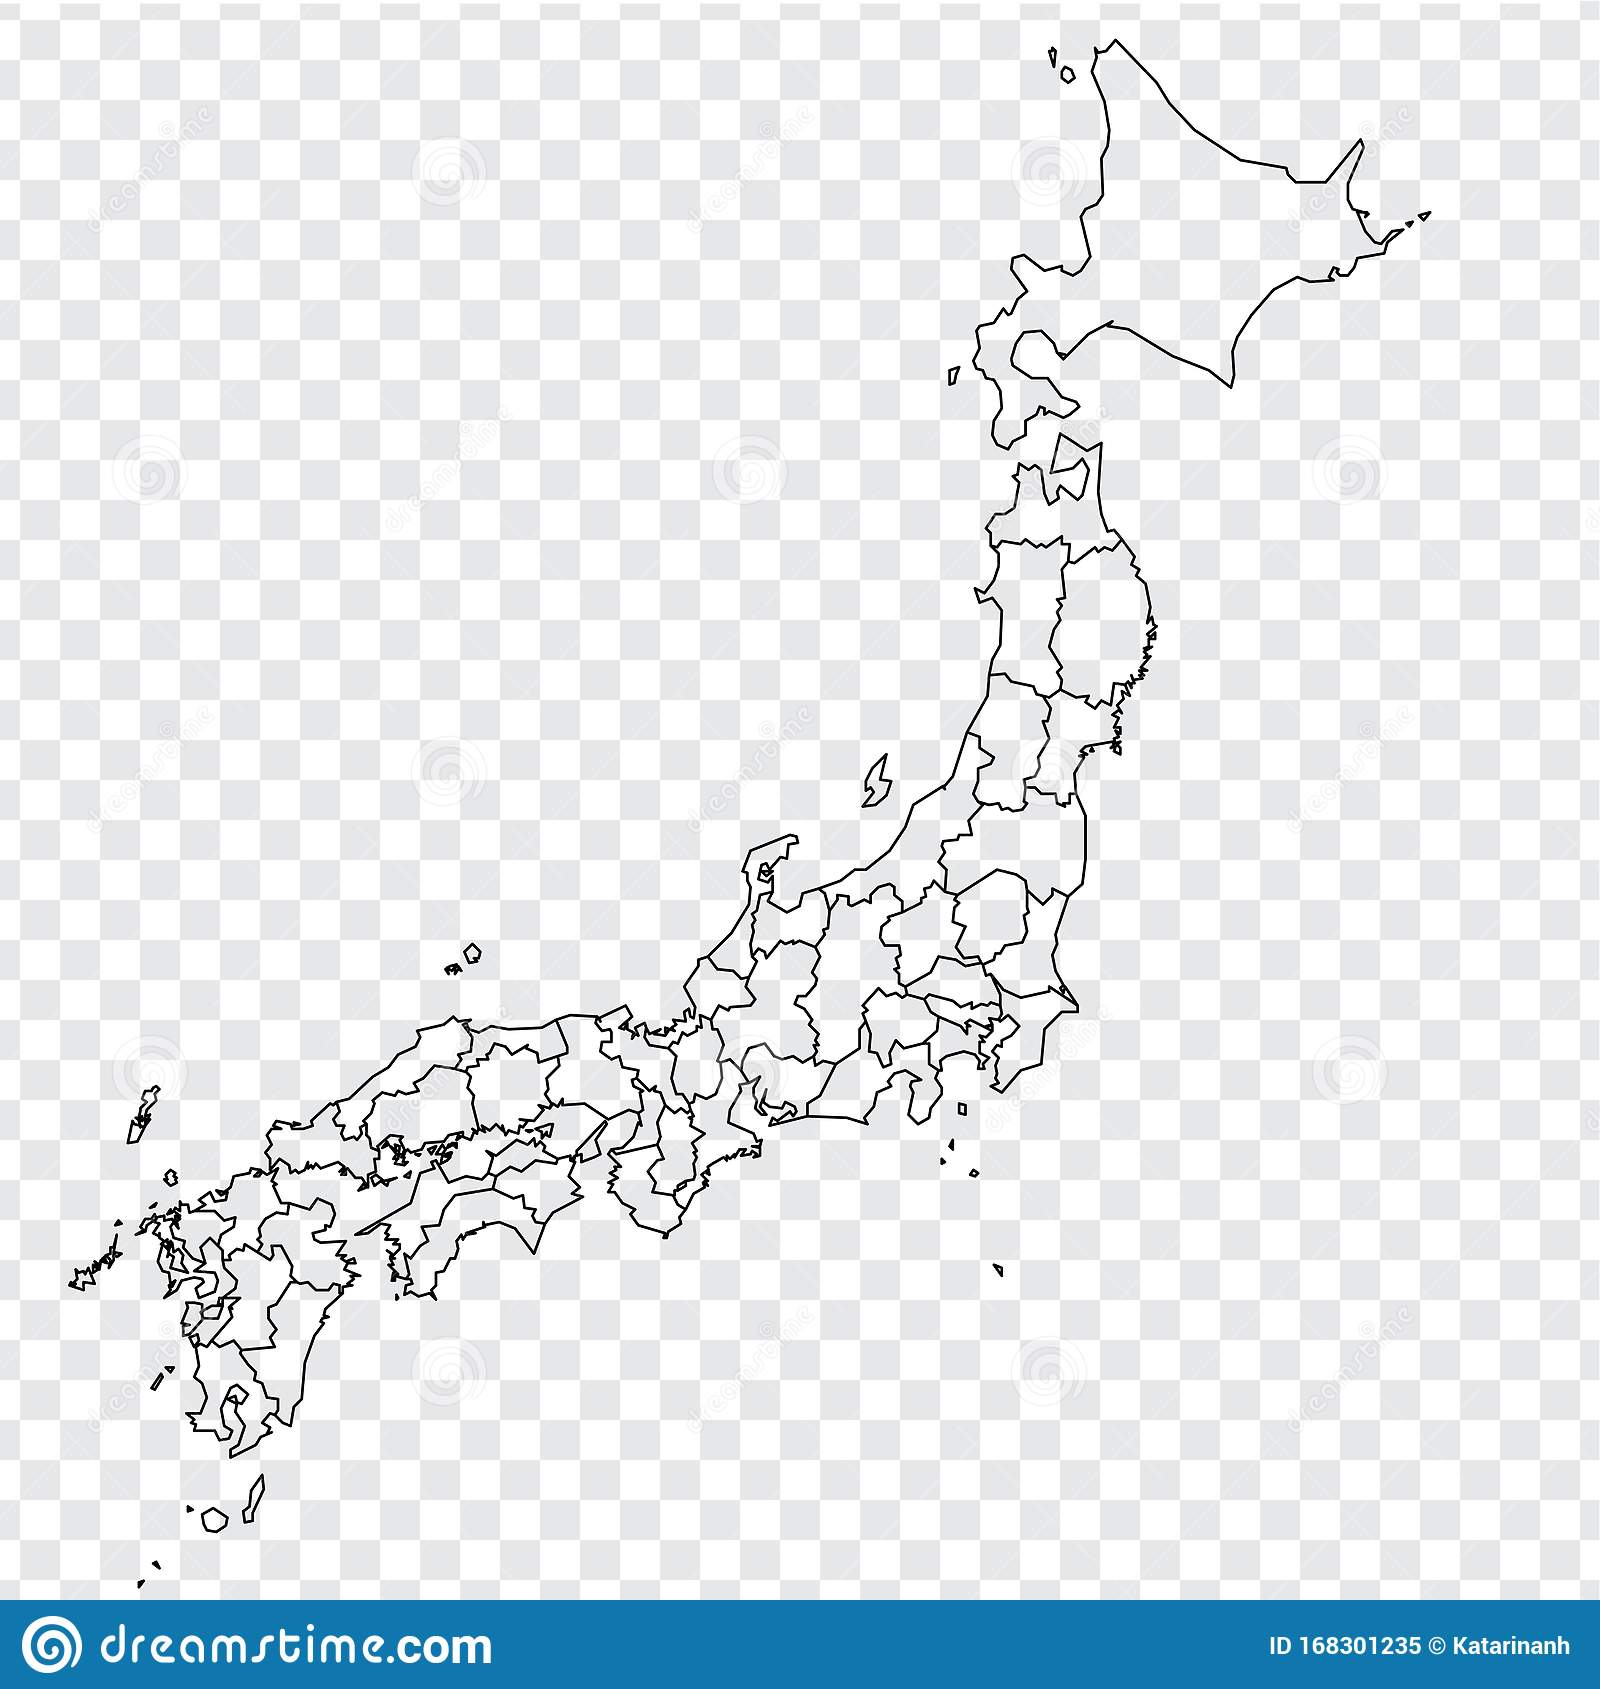 Picture of: Blank Map Of Japan High Quality Map Of Japan With Provinces On Transparent Background For Your Web Site Design Logo App Ui As Stock Vector Illustration Of Icon Border 168301235